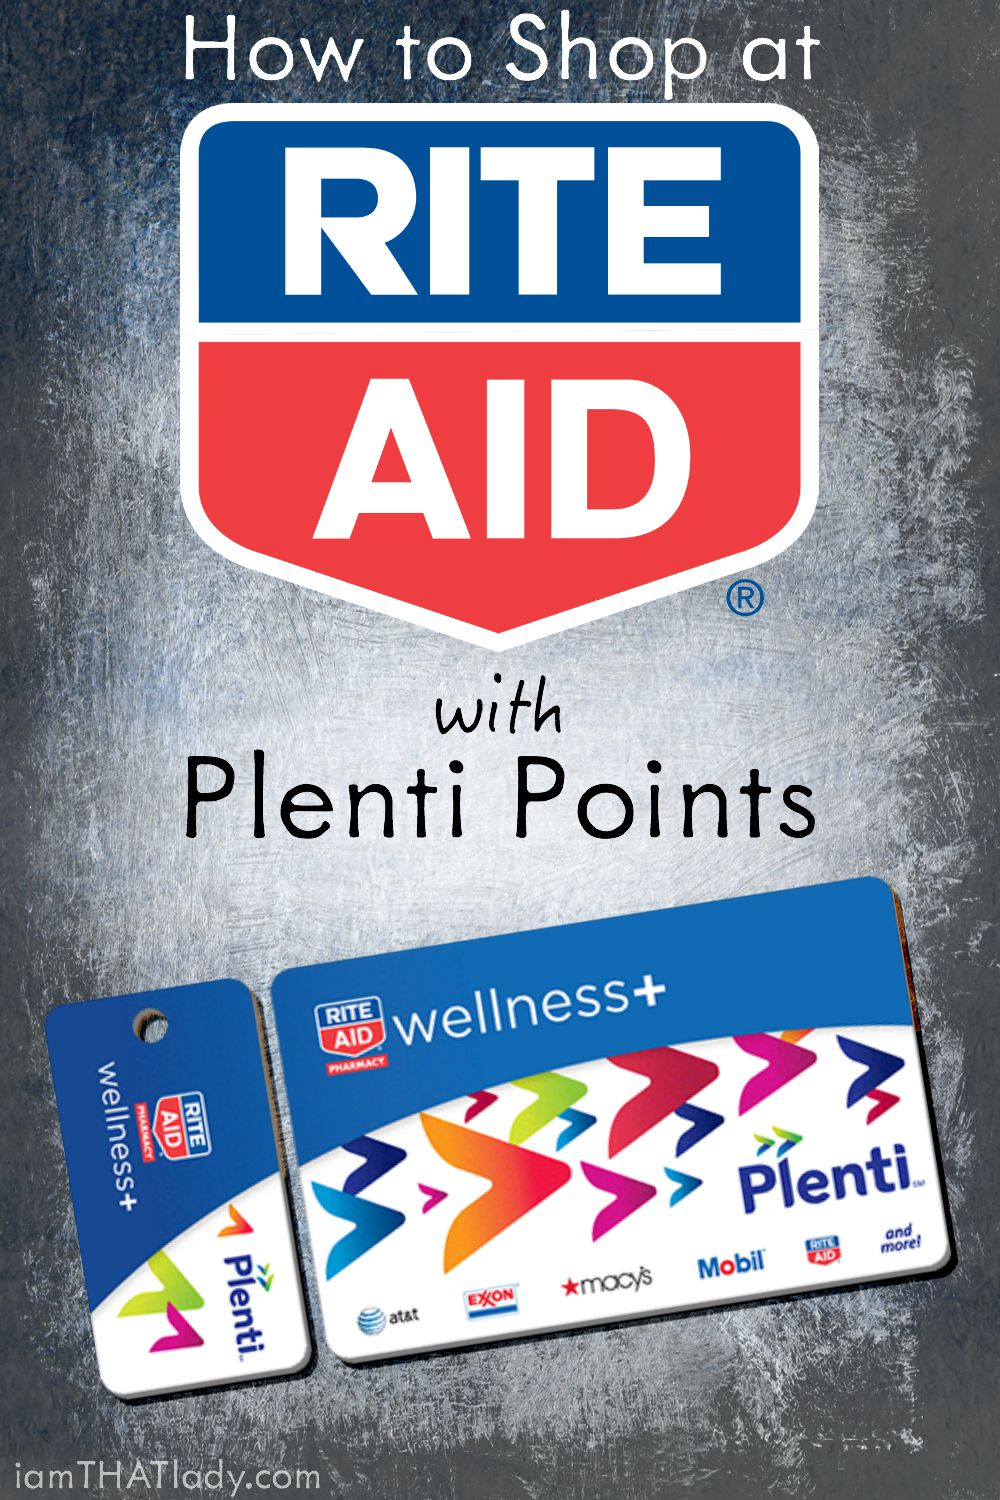 How to Shop at Rite Aid using Plenti Points - Lauren Greutman